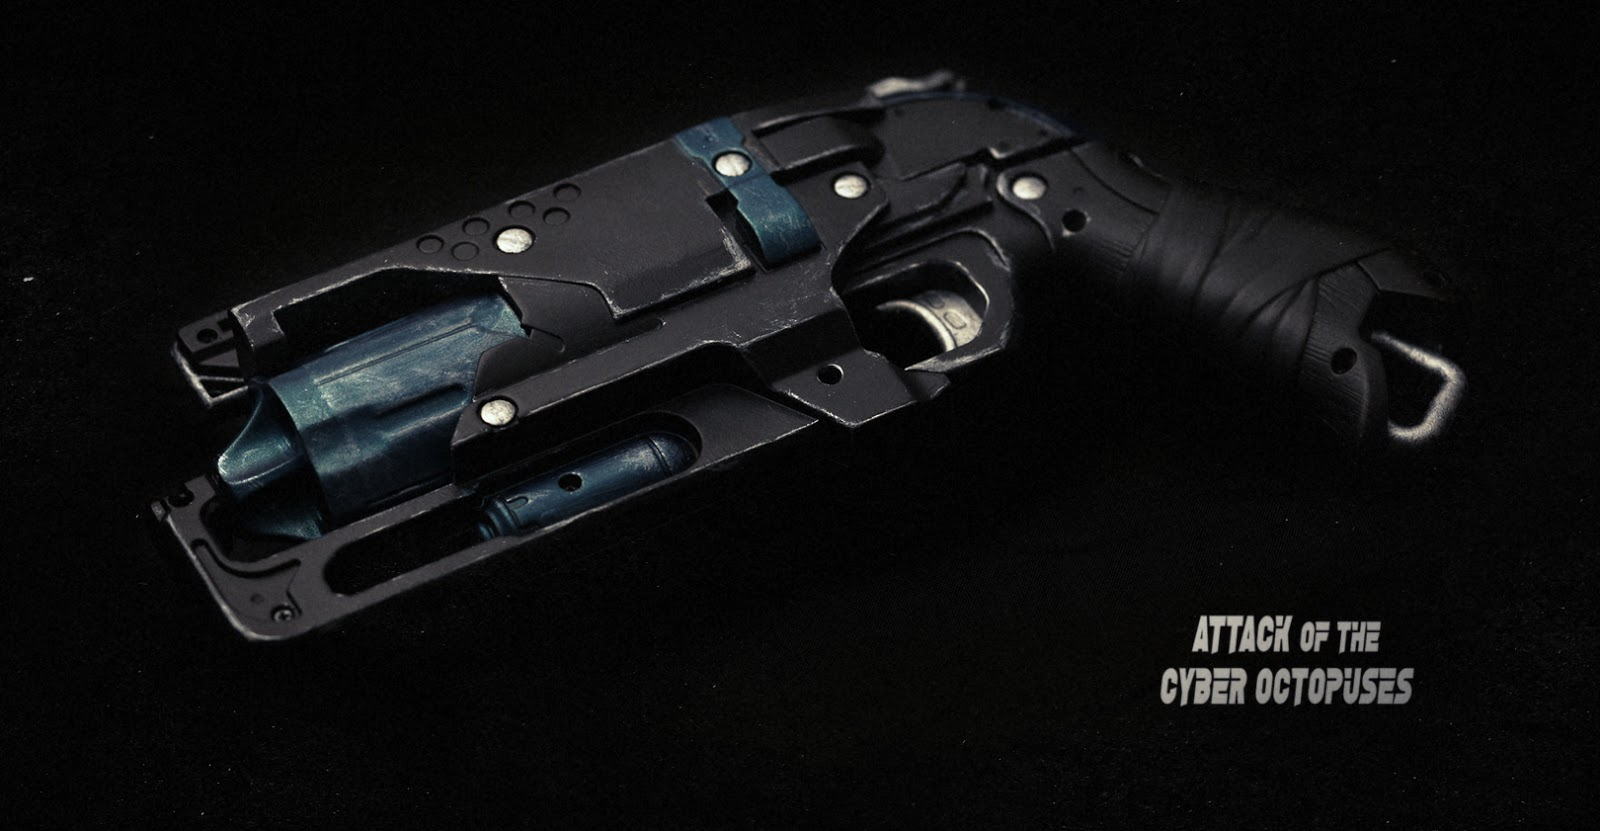 attack of the cyber octopuses cyberpunk nerf custom mod